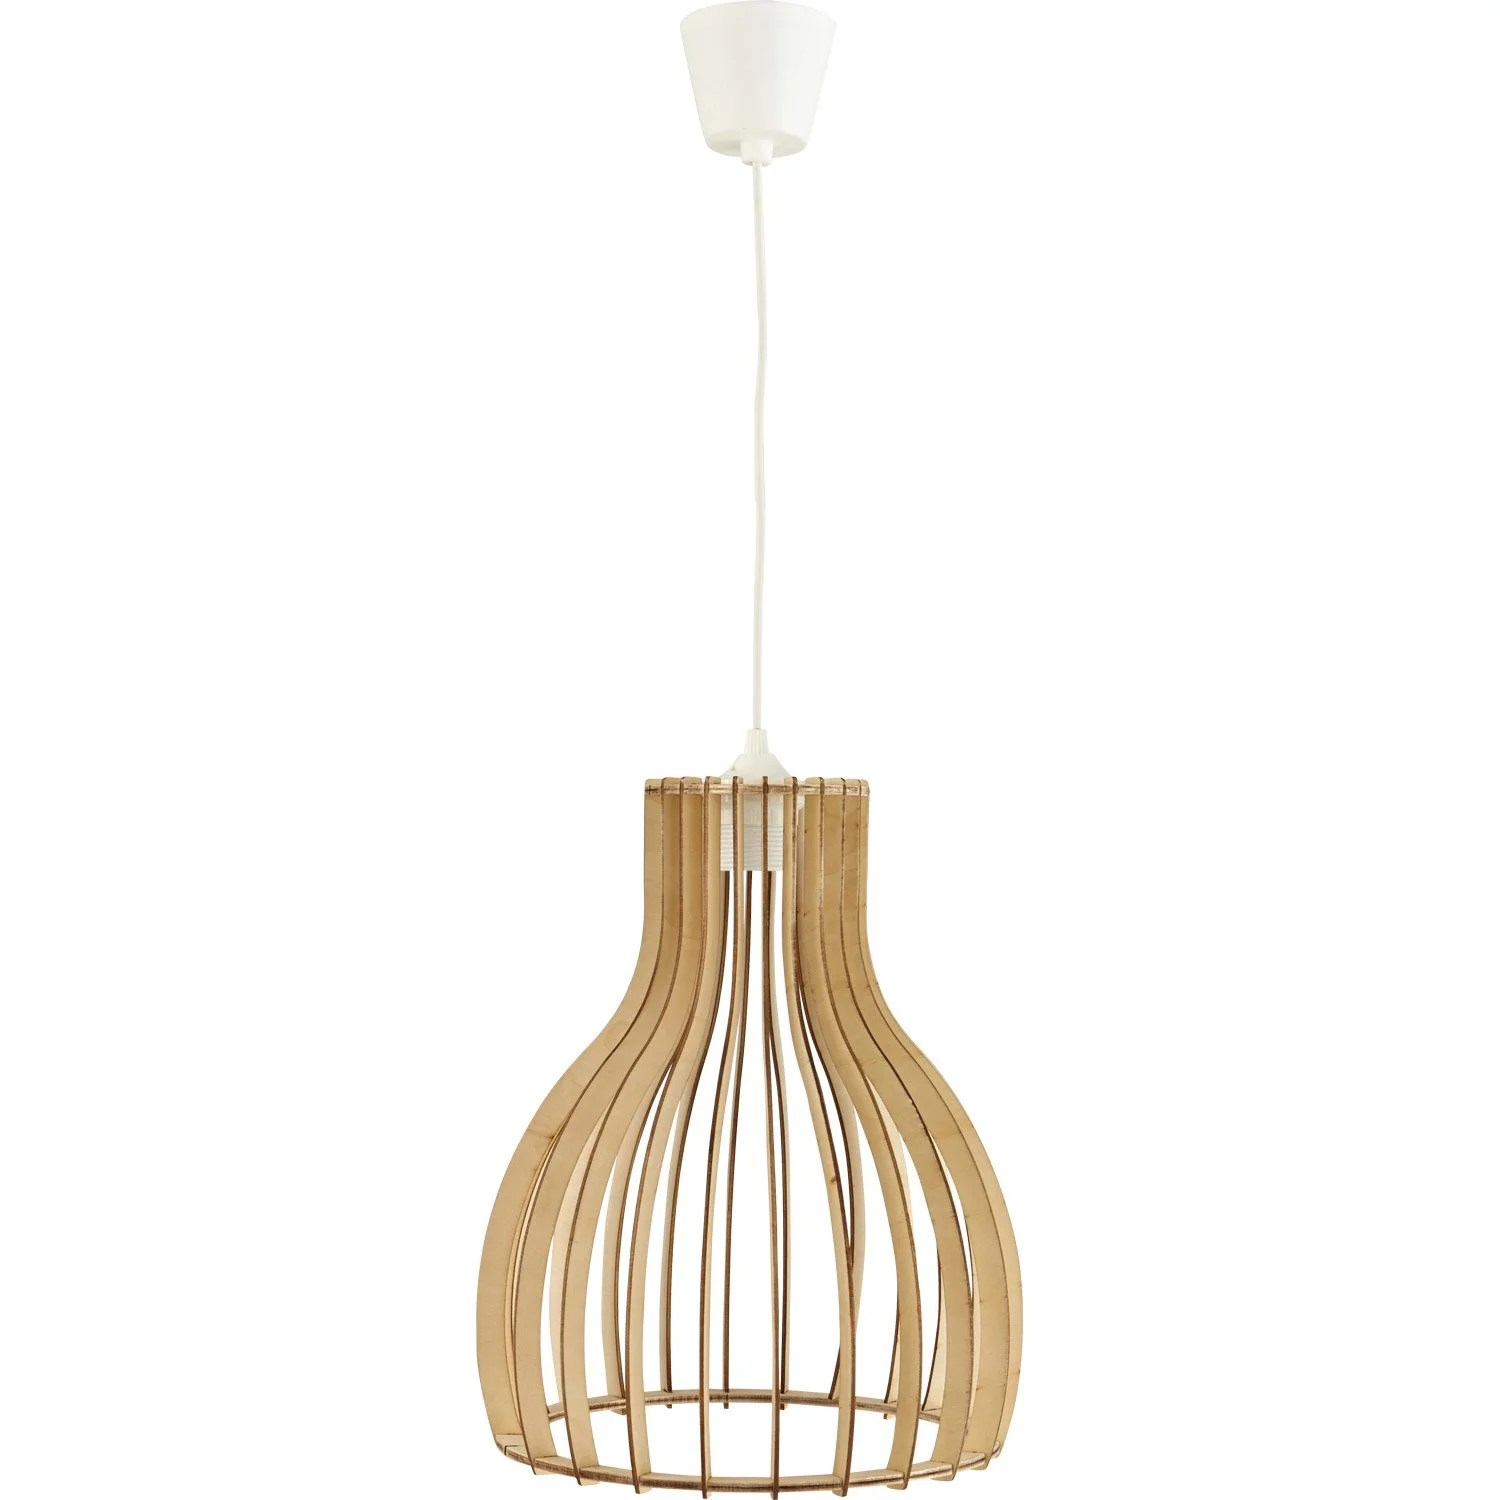 Applique Liseuse Leroy Merlin Suspension, E27 Helsinki Bois Bois Naturel 1 X 60 W